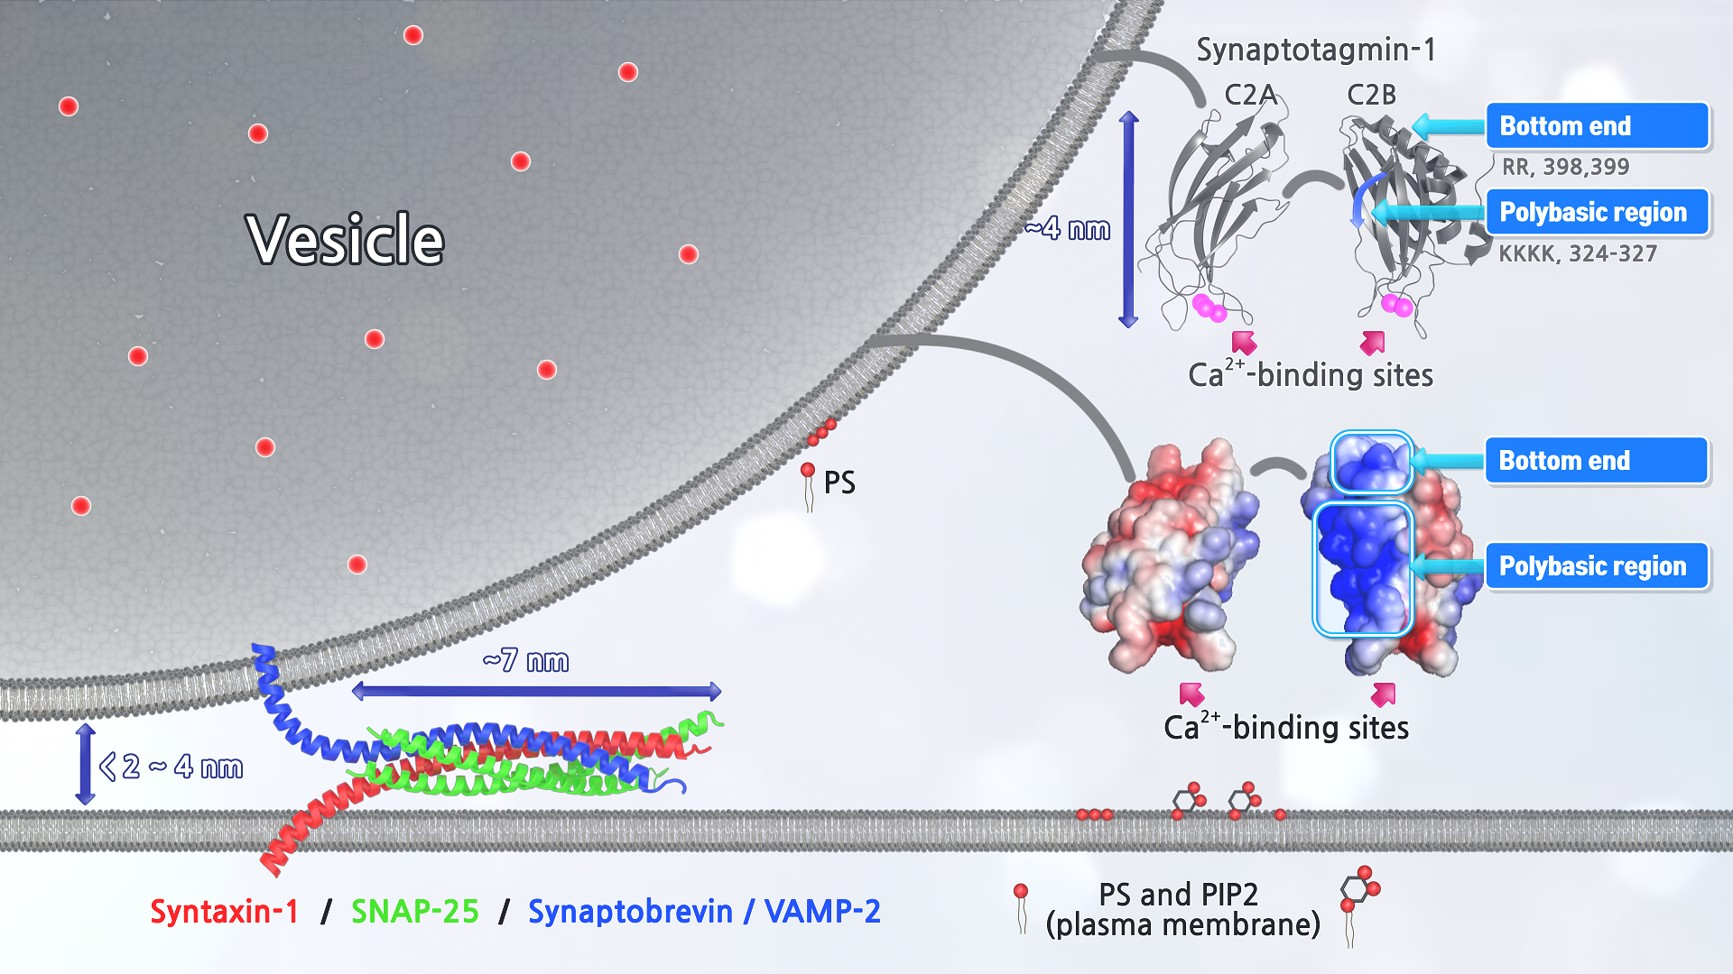 <p>1. We study microRNA exocytosis by LDCV fusion. Our research and data are opening the new field and concept that microRNA can be a novel neuromodulator, which is stored inside the vesicle and released together with classical neurotransmitters by vesicle fusion, thereby contributing to cell-to-cell communication.</p> <p>2. My group aims to investigate the molecular mechanisms of vesicle fusion by combining interdisciplinary techniques that include cell biological, biophysical, and biochemical tools.</p> <p>3. We focus onneuronal differentiation of human induced pluripotent stem cells (hiPSC) as a disease model of autism and neurodegenerative disorders.hiPSCs-derived neurons can be used for personalized medicine to cure autism andneurodegenerative disorders.</p>